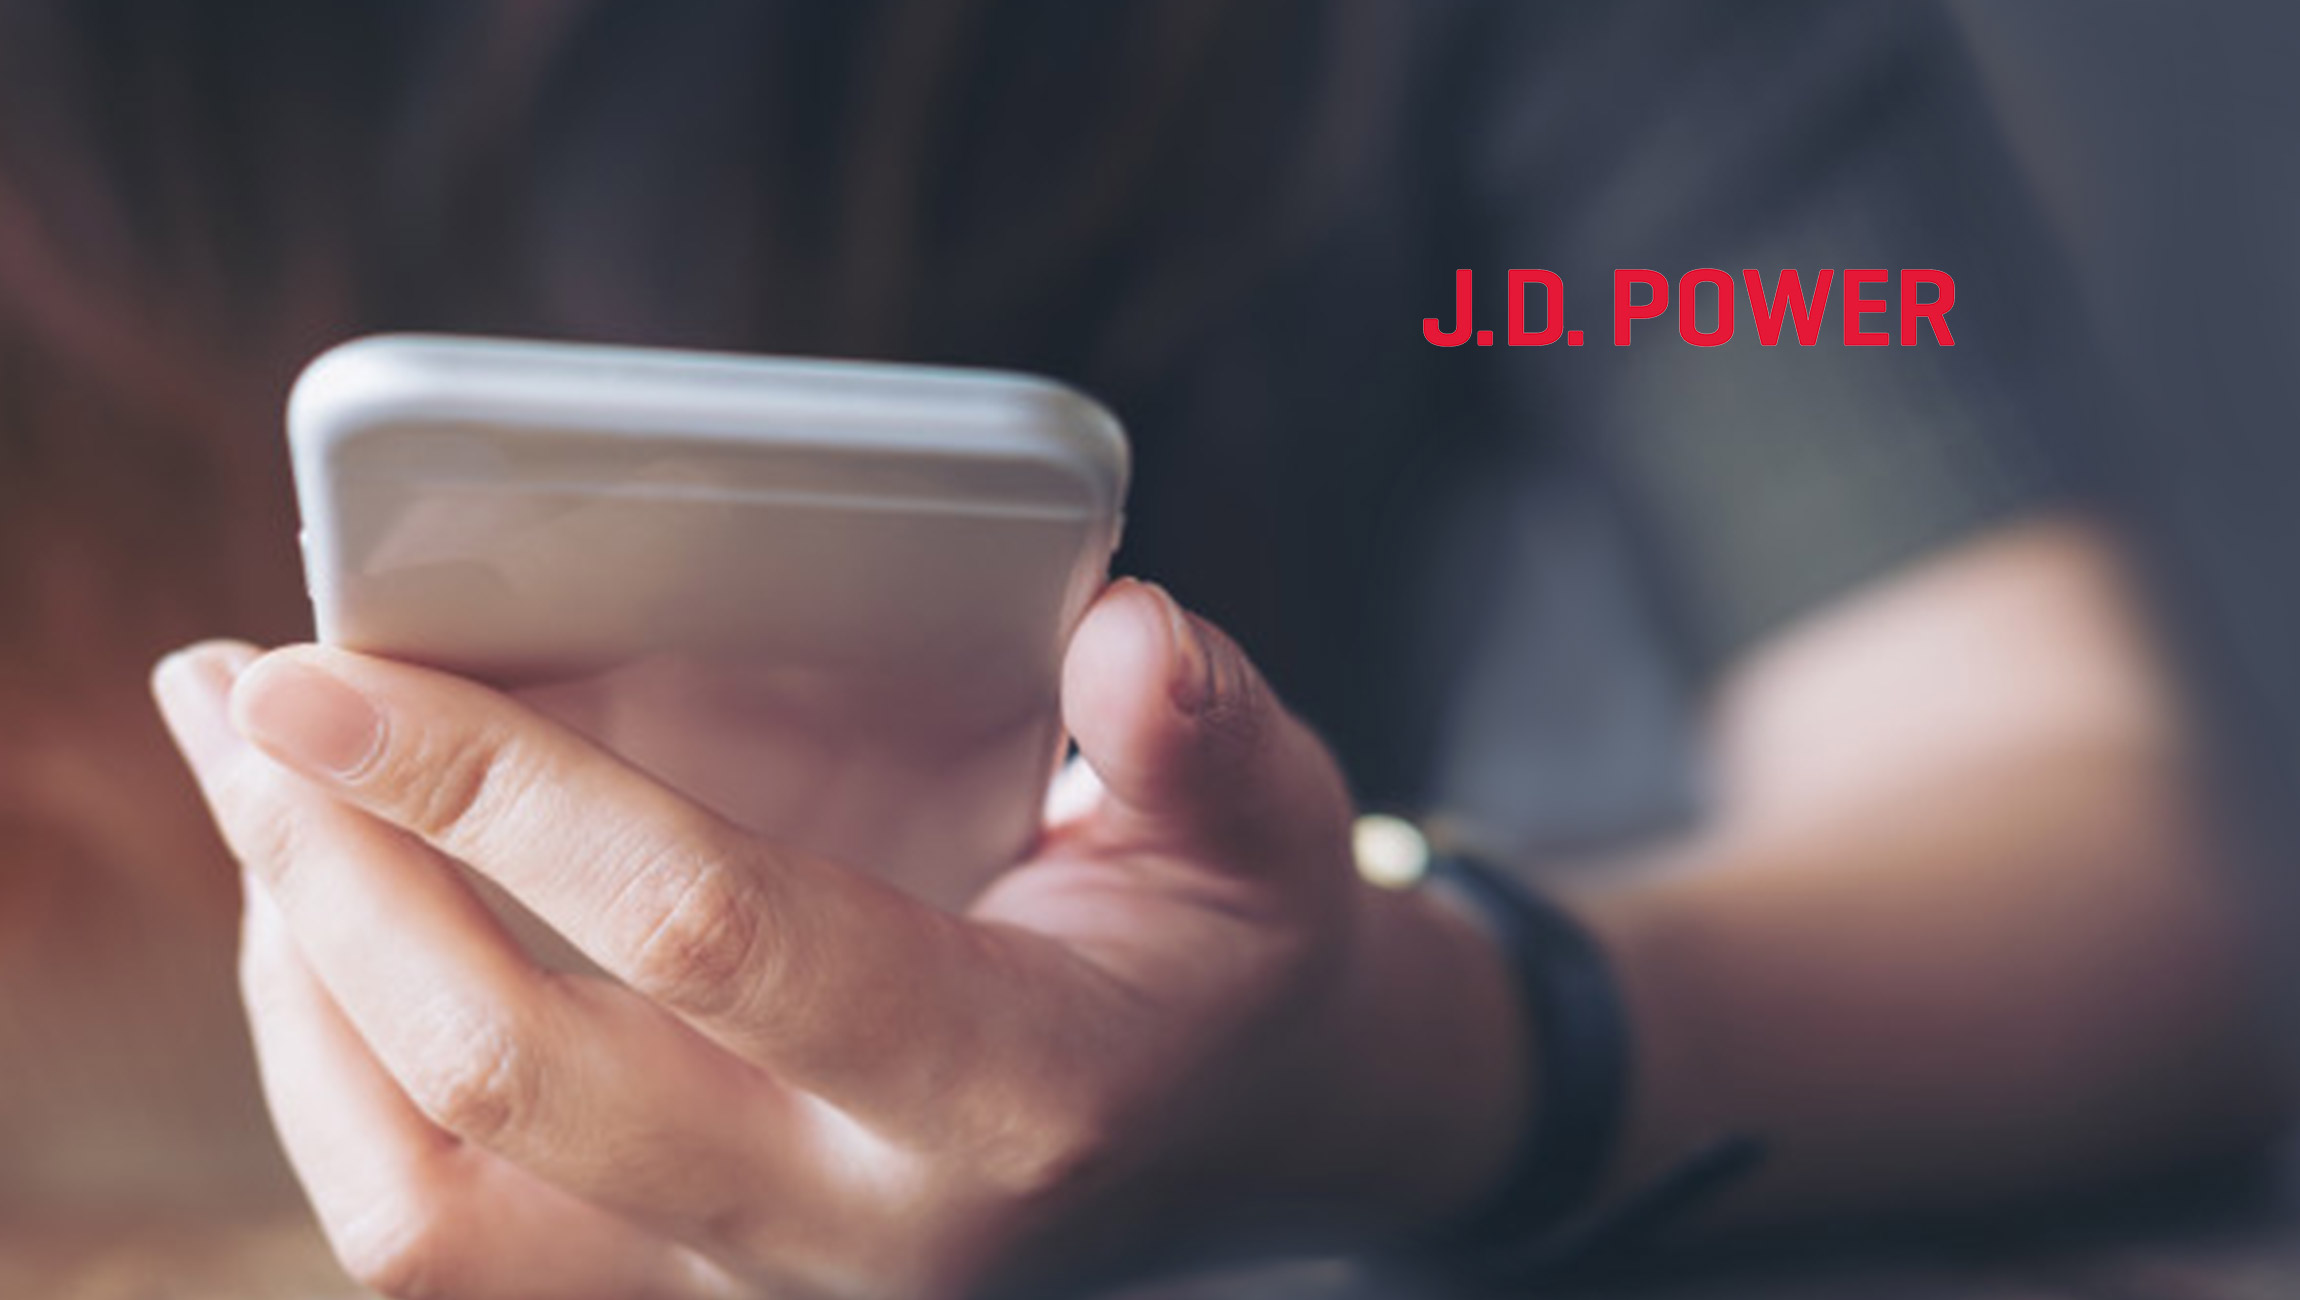 J.D. Power and Uptake Create New Benchmarking Products that Leverage Artificial Intelligence